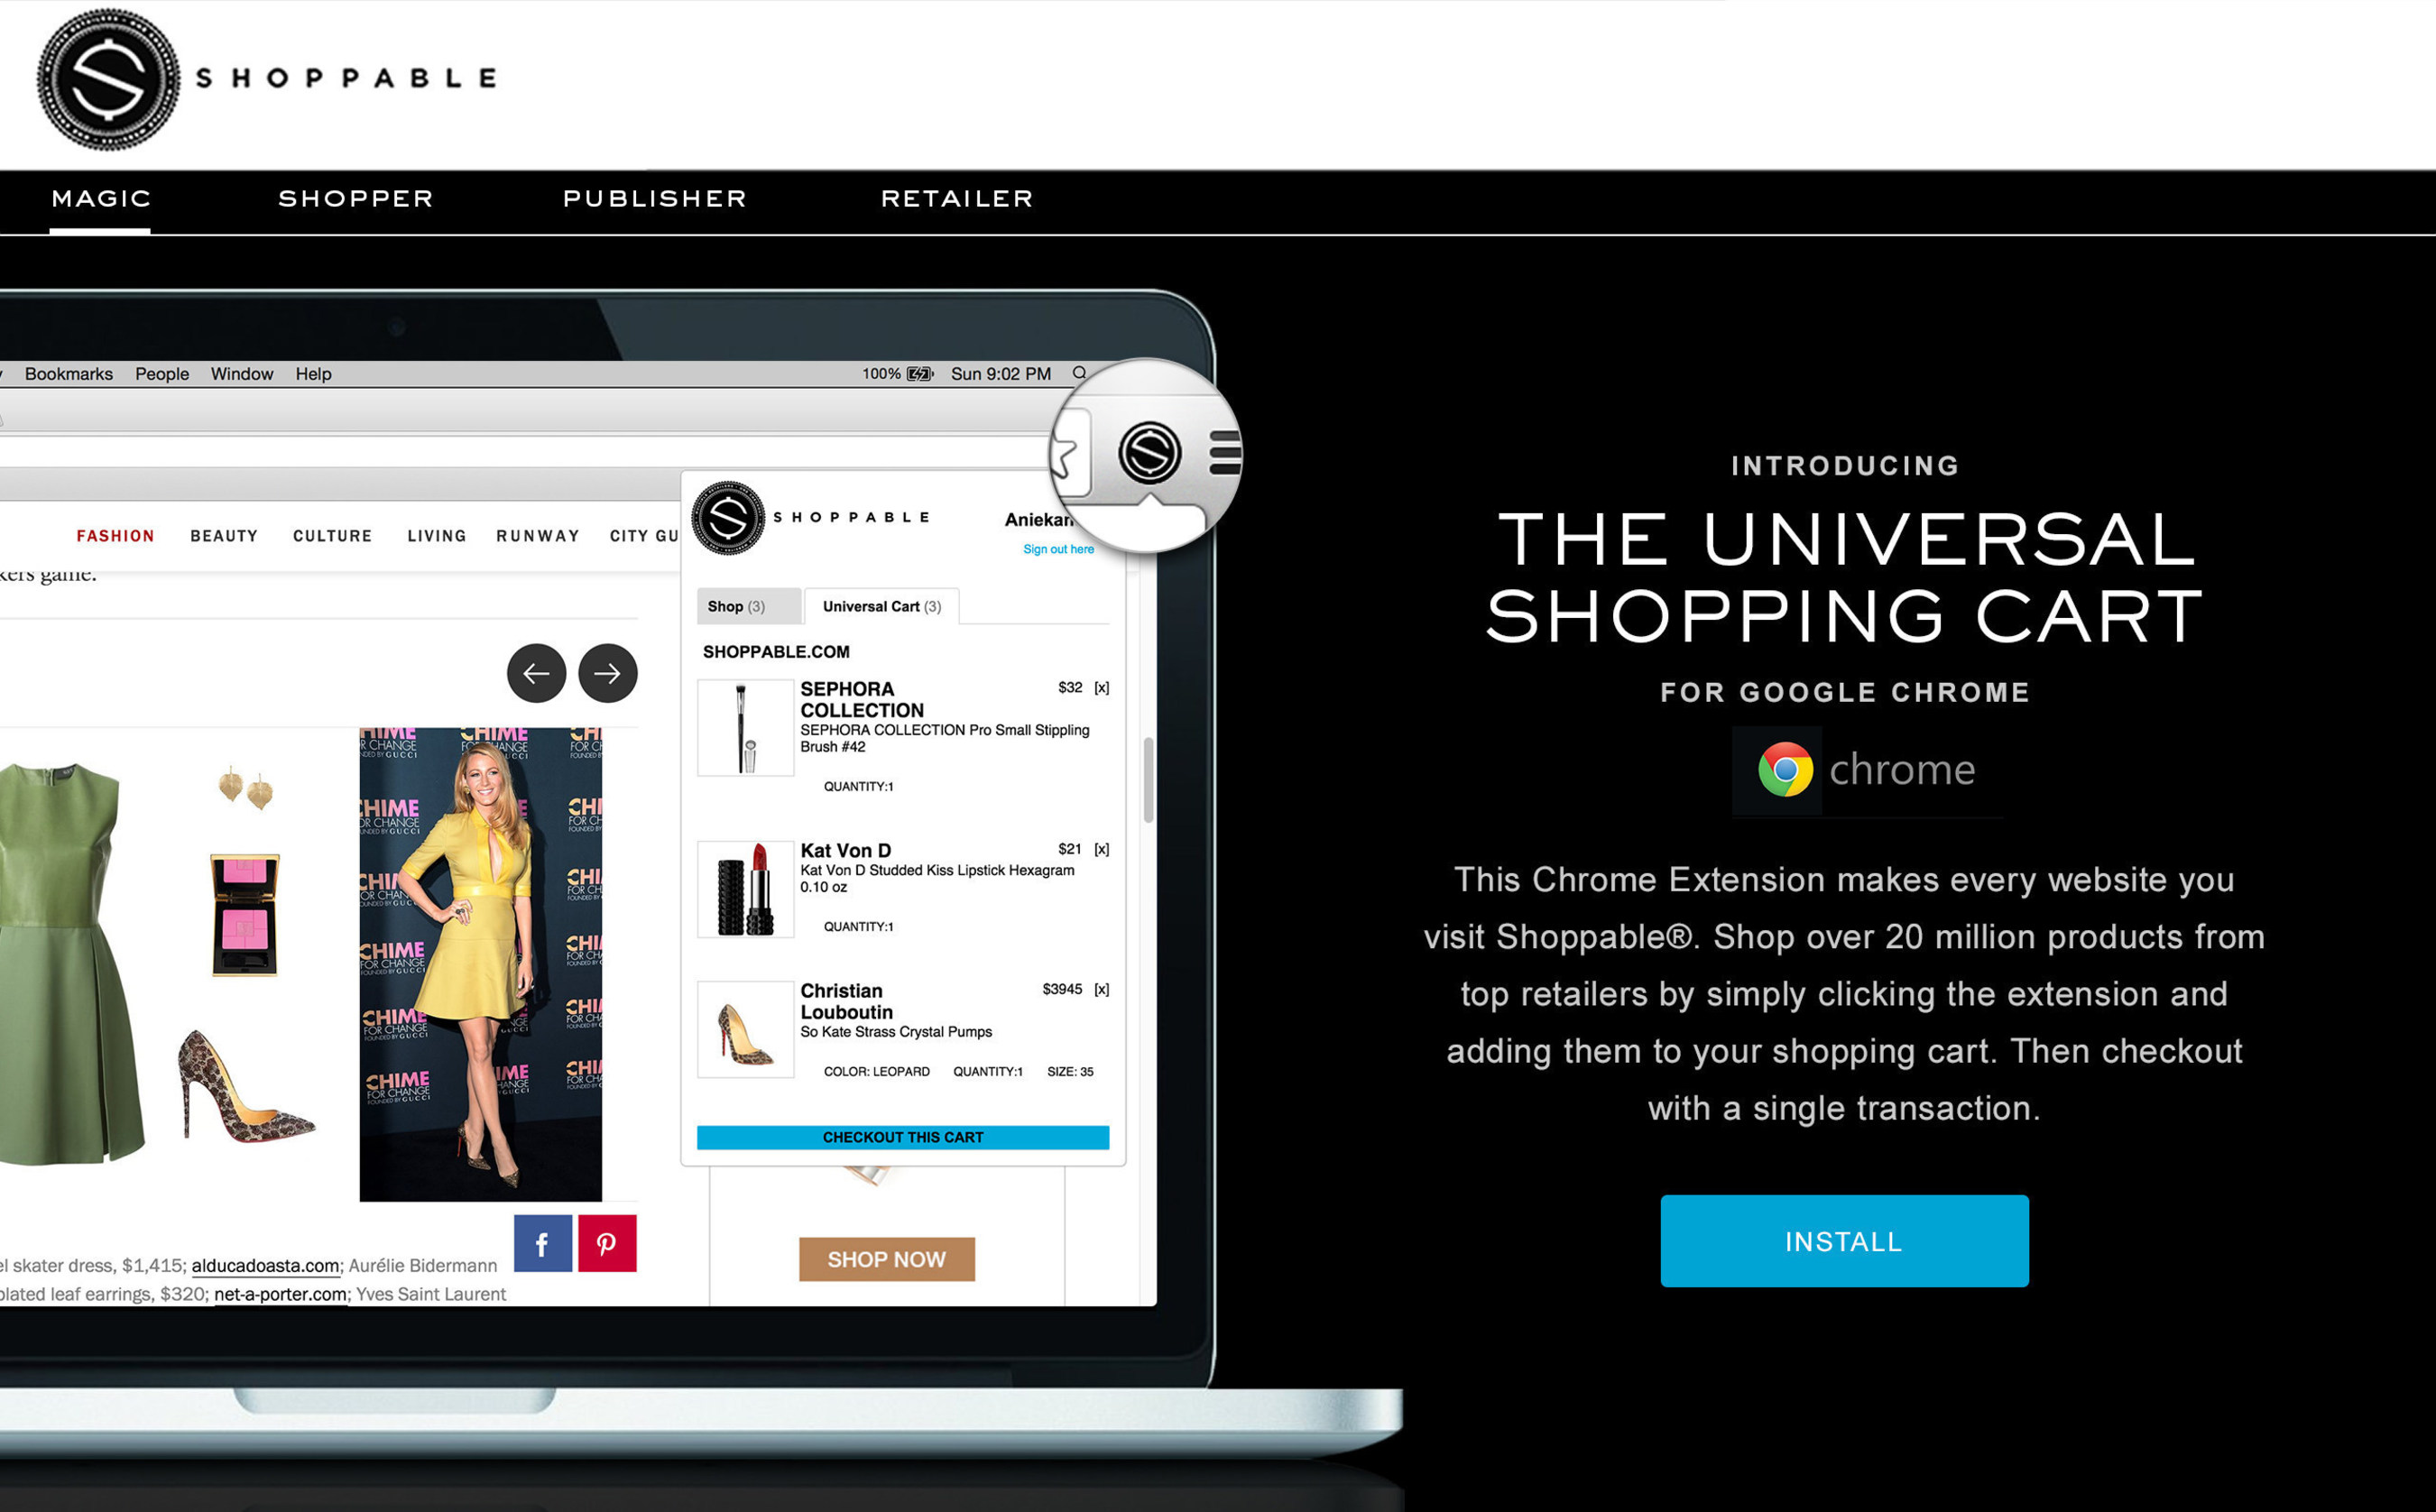 Shoppable: The Universal Shopping Cart(R) now available on Google Chrome